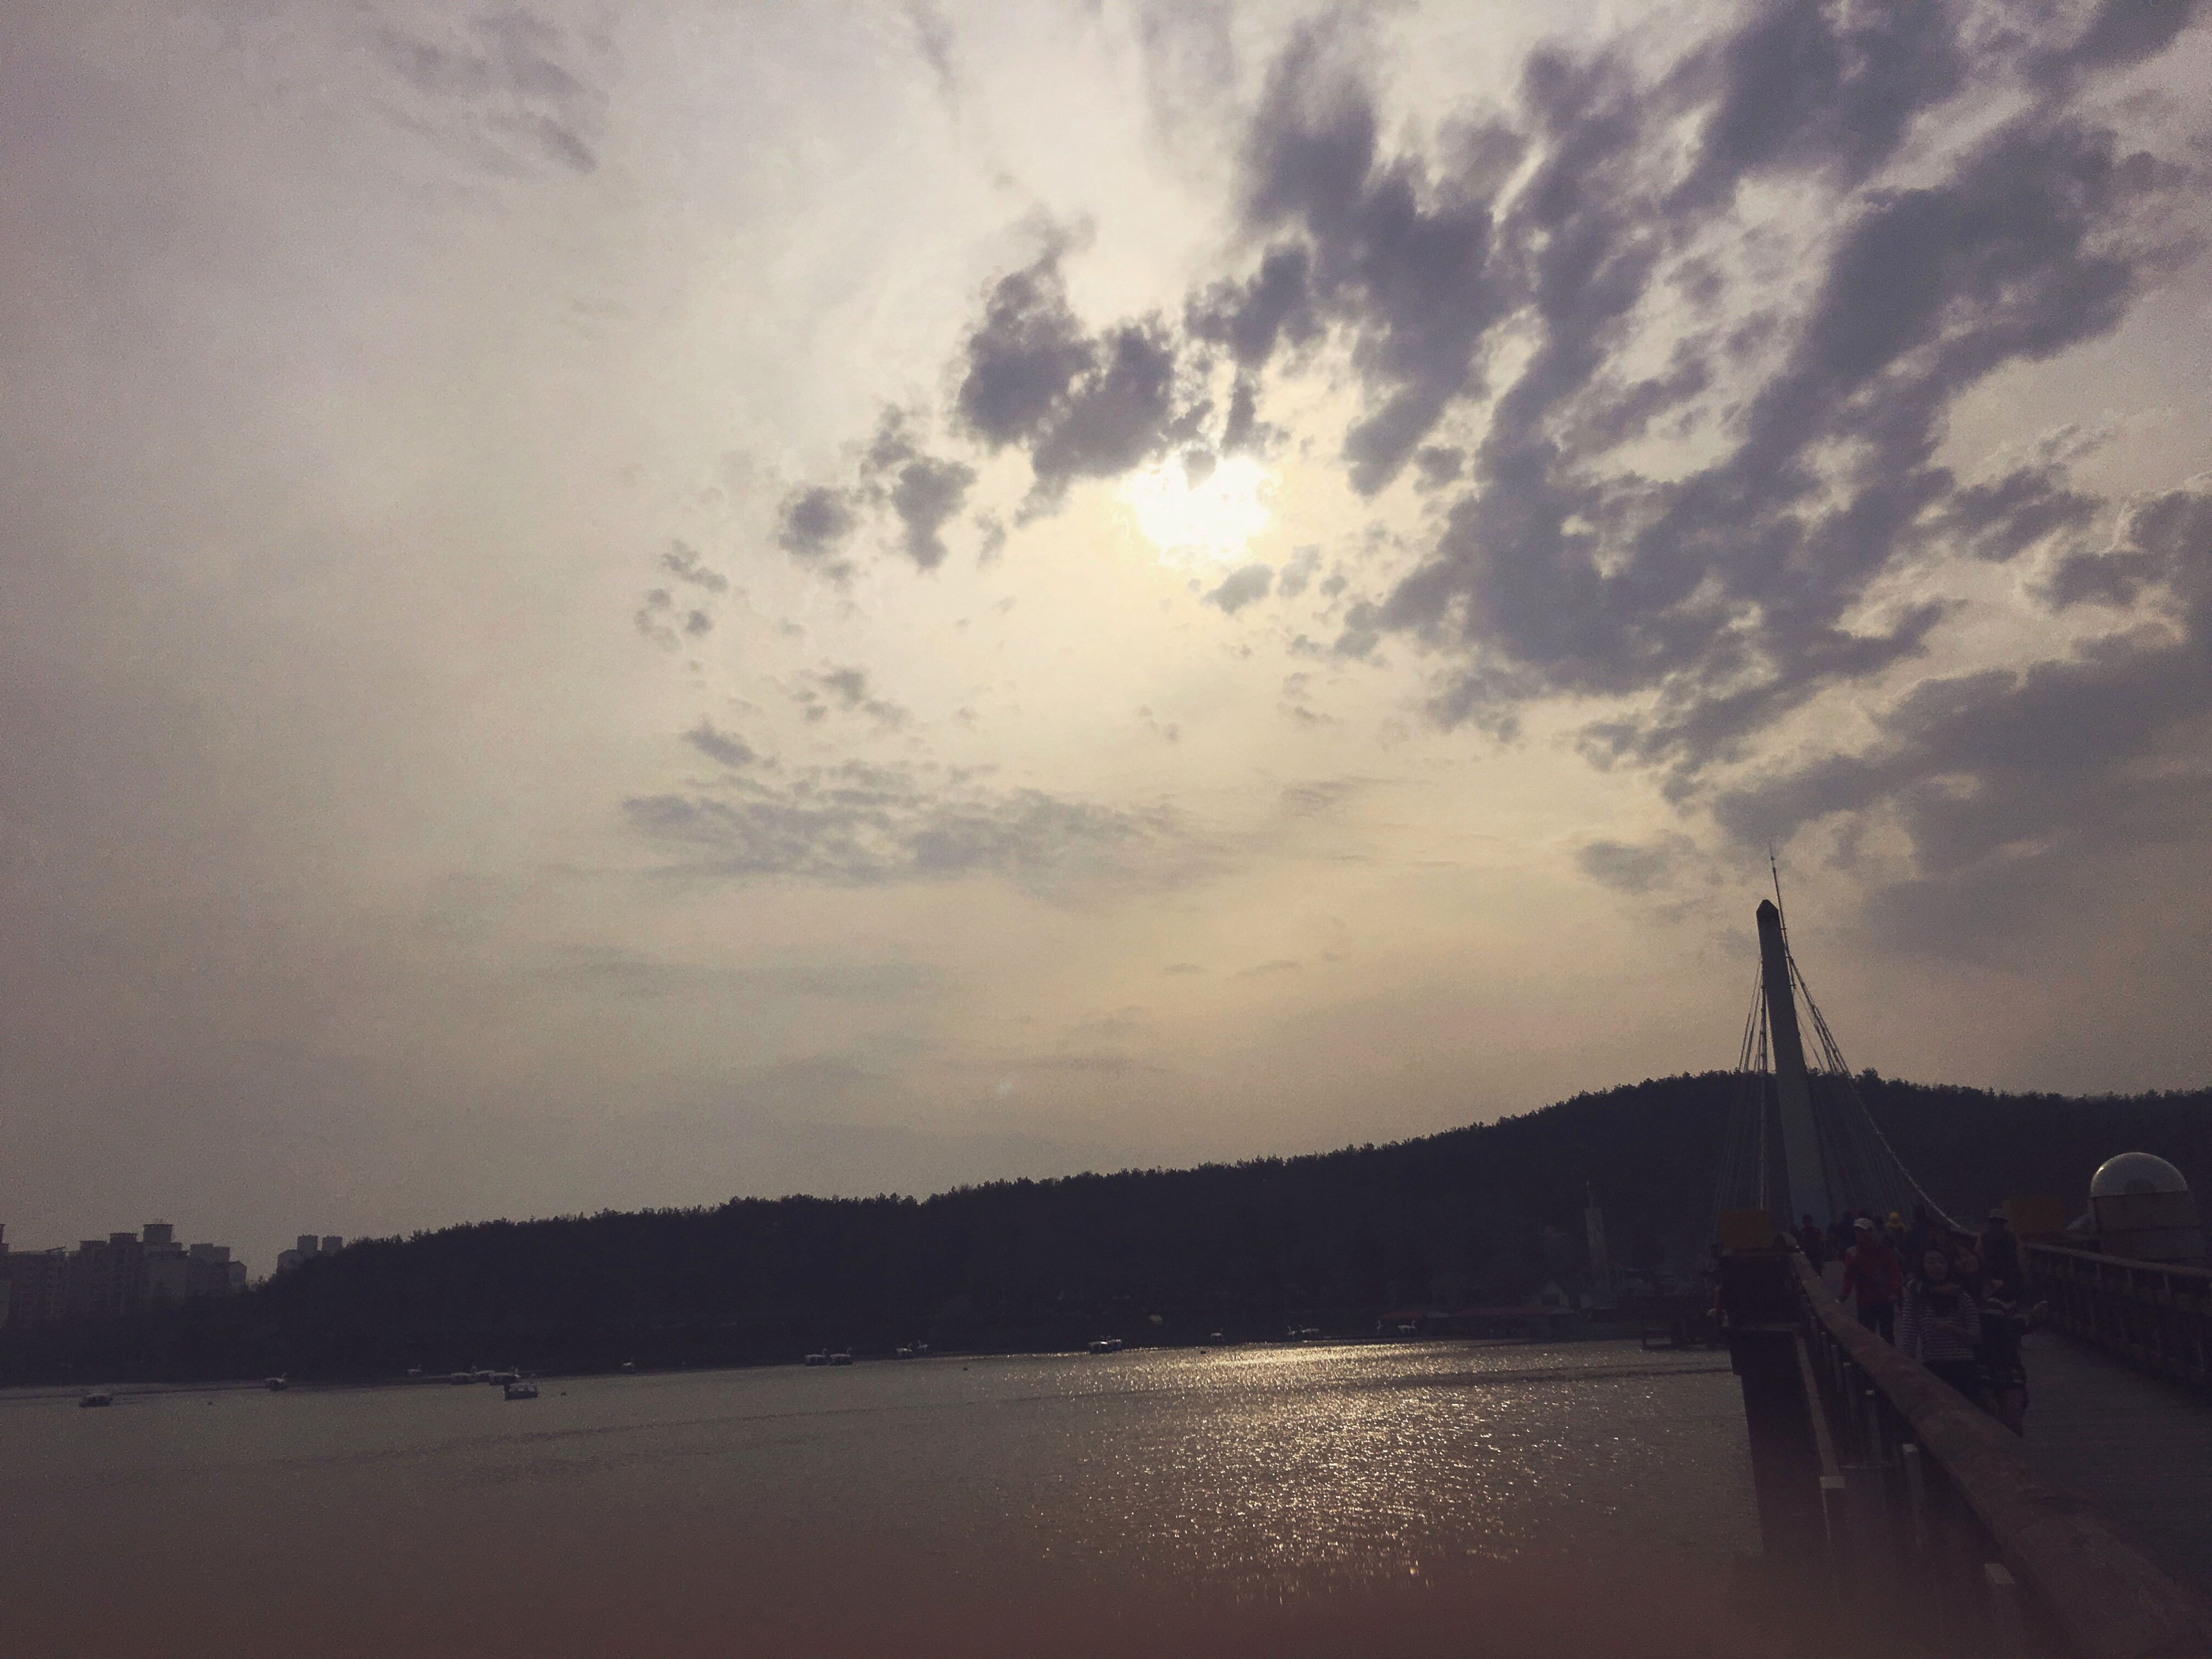 water, sky, waterfront, built structure, architecture, cloud - sky, river, connection, bridge - man made structure, cloudy, tranquility, silhouette, tranquil scene, scenics, nature, cloud, sunset, sea, beauty in nature, building exterior